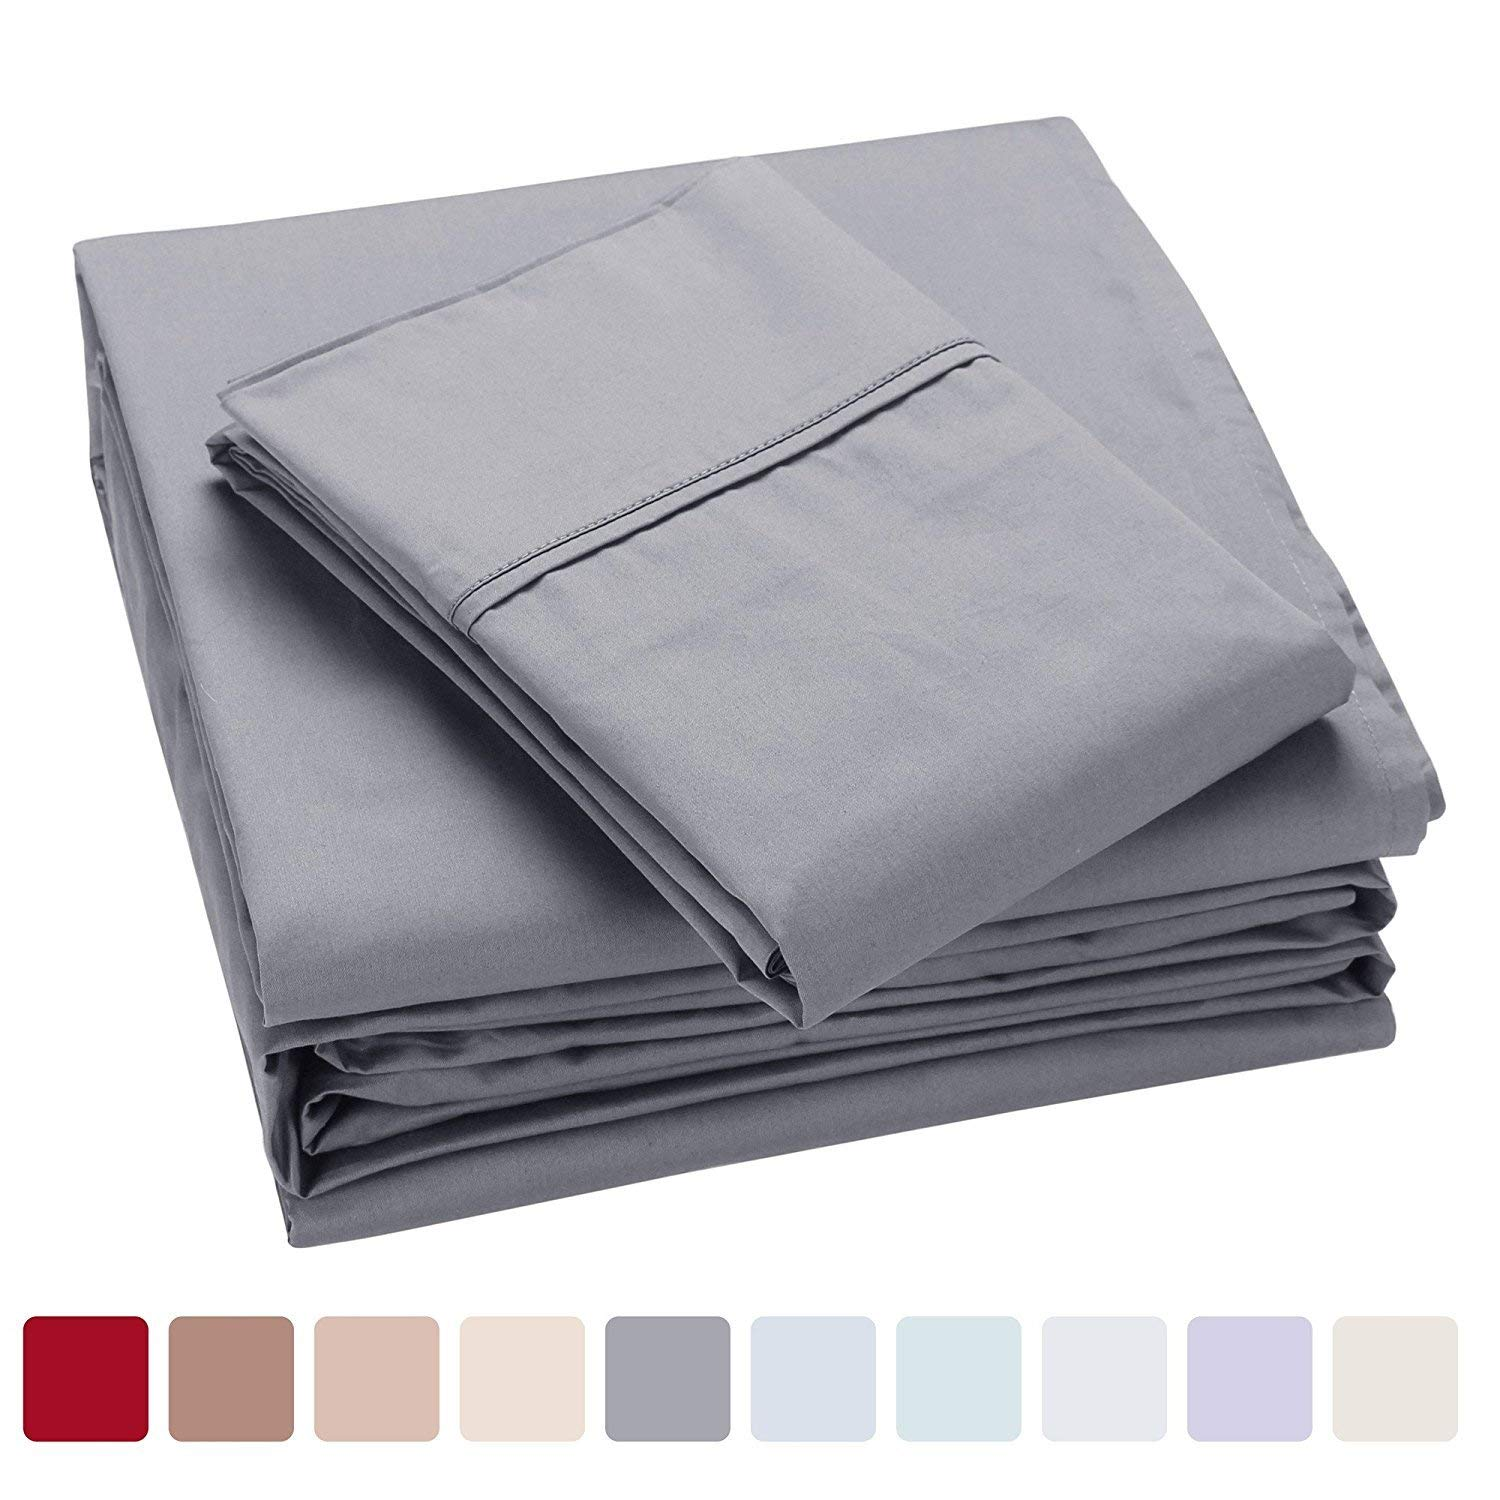 100% Cotton Bed Sheets, 400 Thread Count Pure Cotton Sateen Sheets, Cool Bed Sheets for Summer, Fits Mattress Upto 13'' Deep Pocket, Dark Gray, King